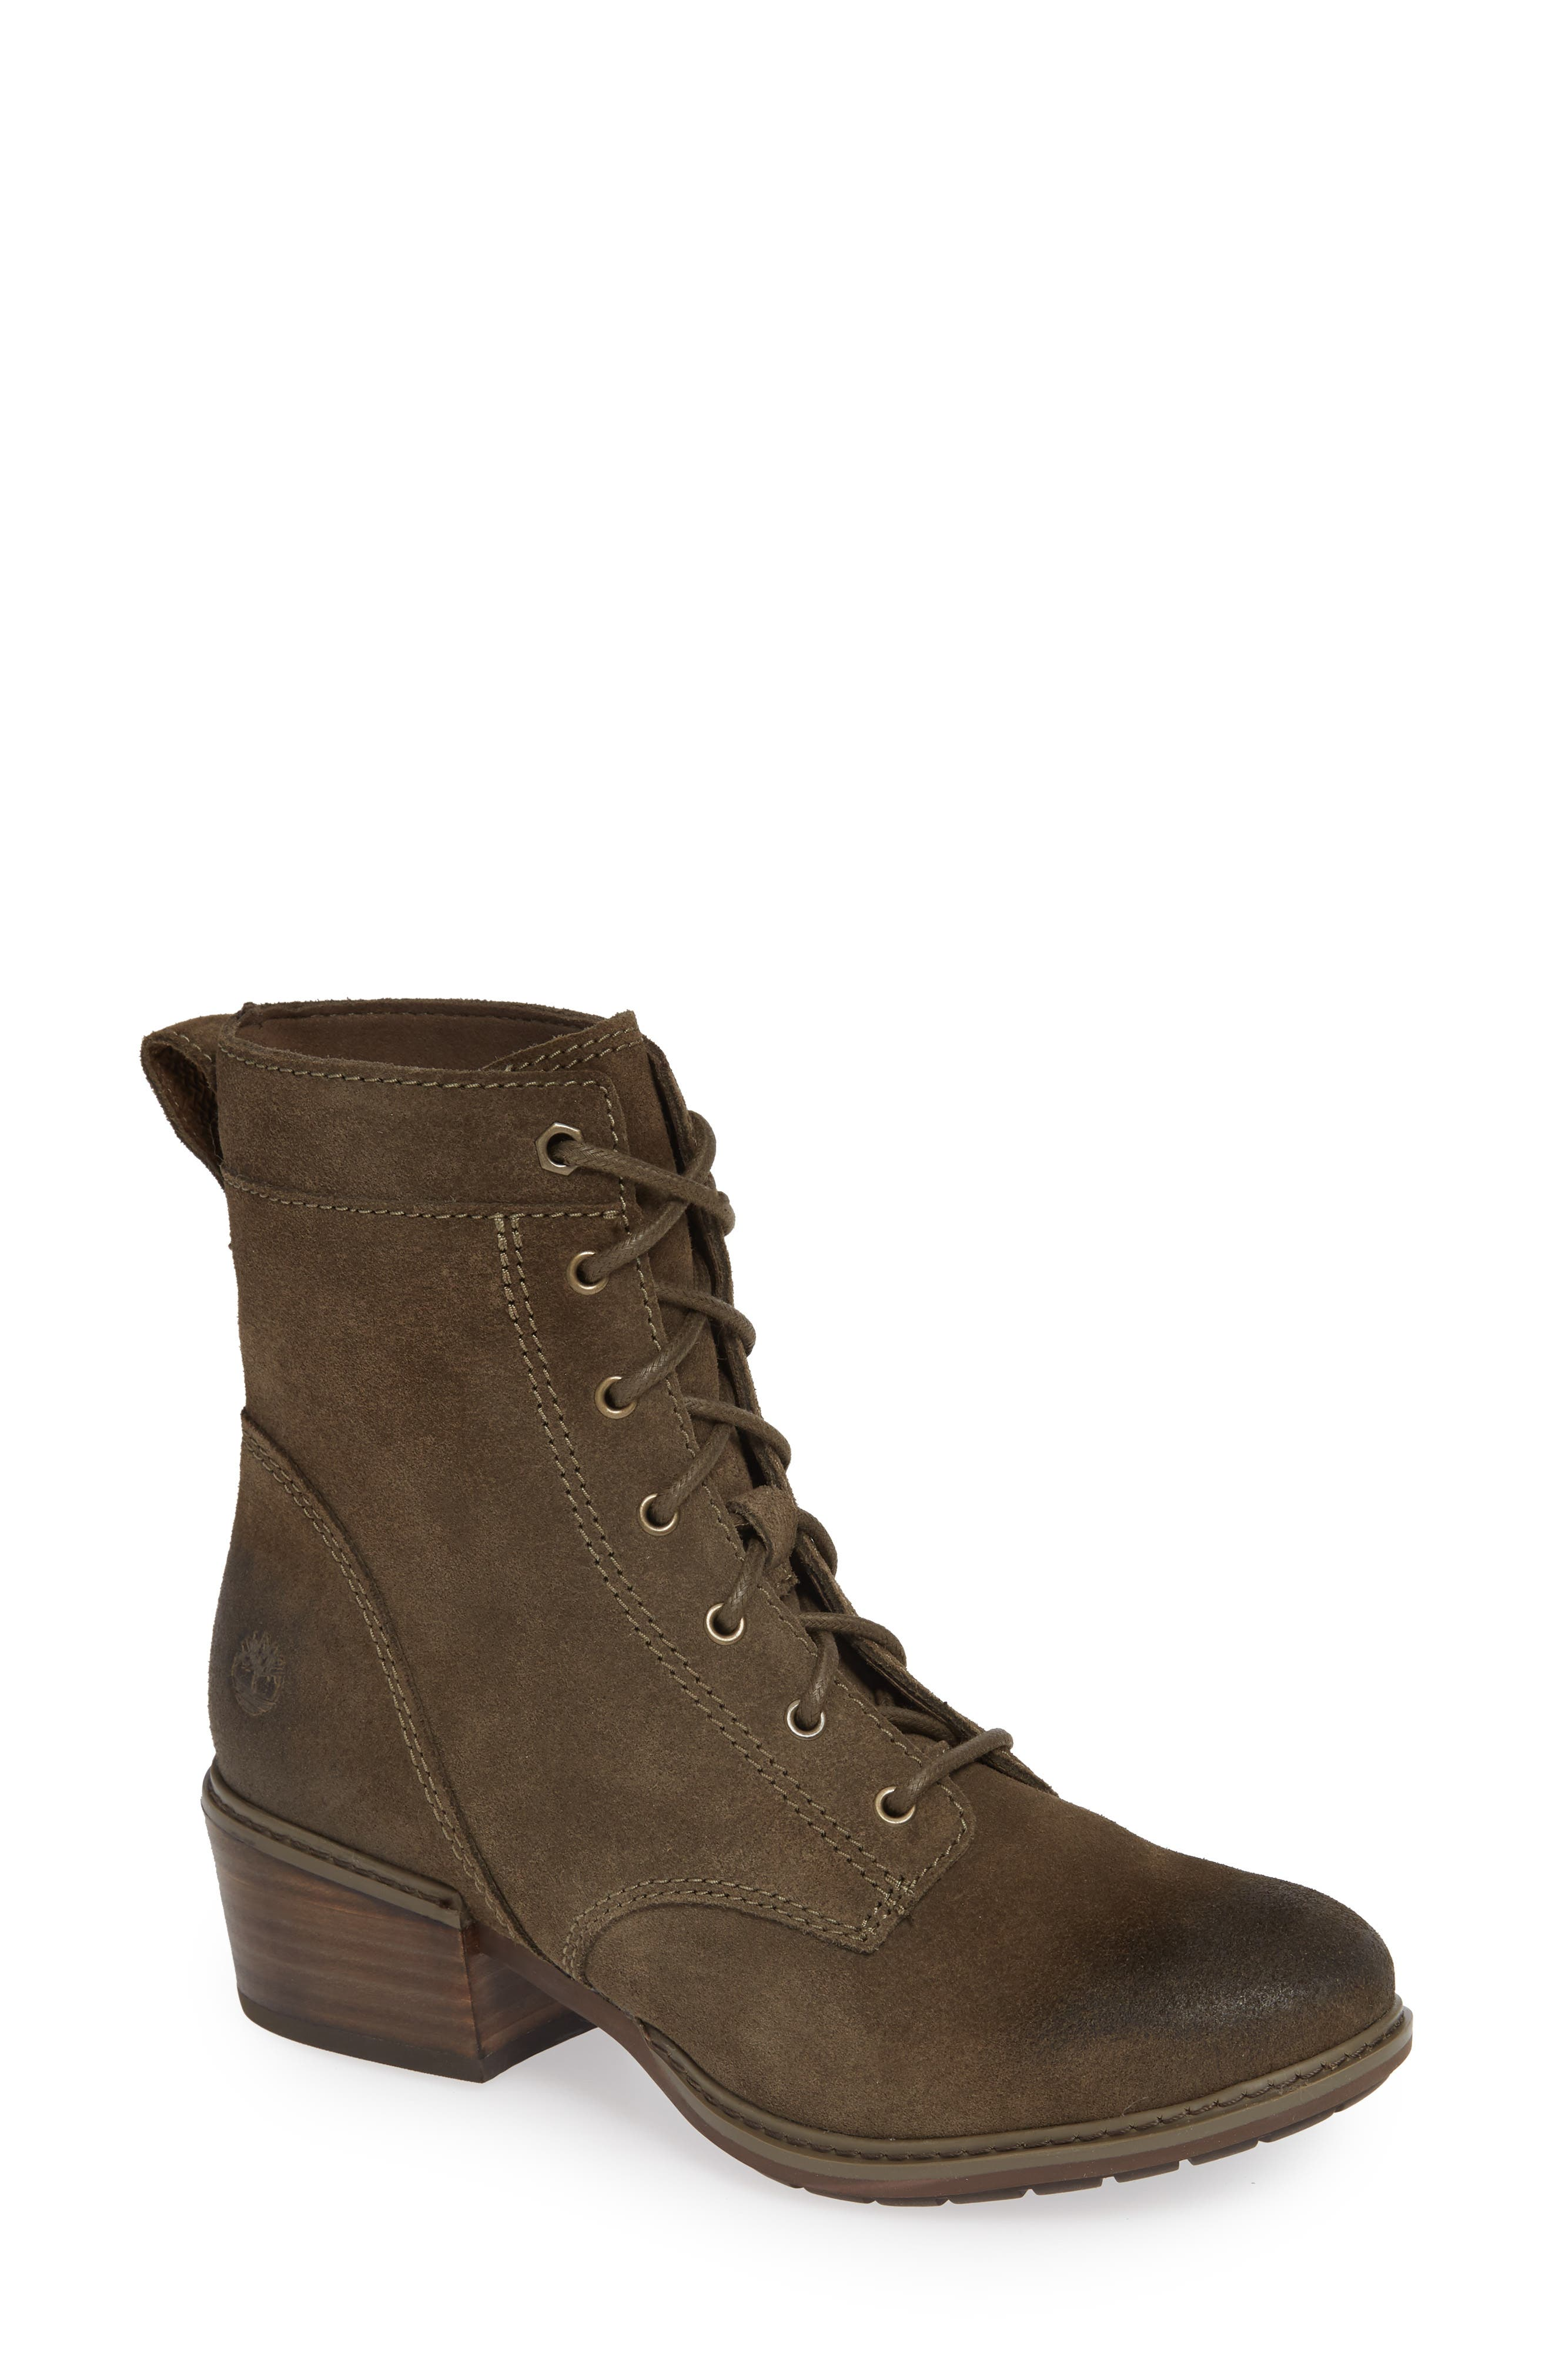 TIMBERLAND Sutherlin Bay Water Resistant Lace-Up Bootie, Main, color, CANTEEN SUEDE